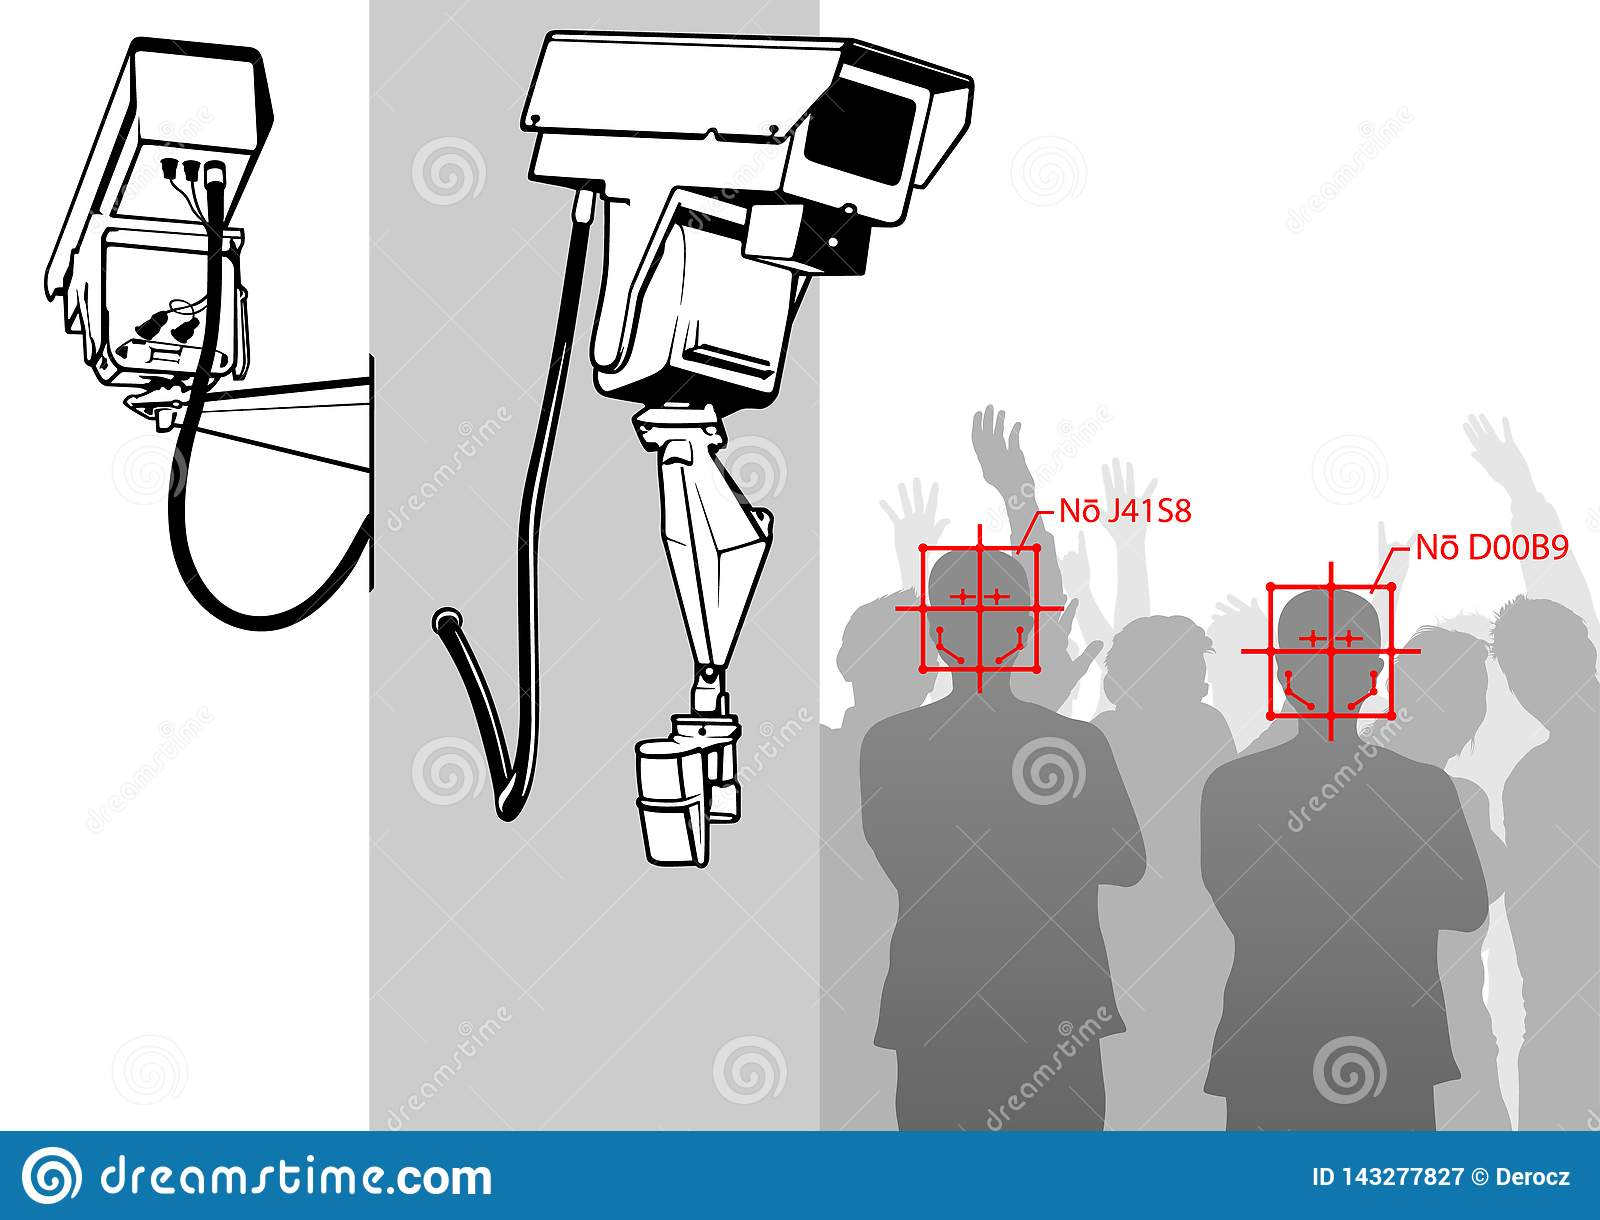 Face Detection With Camera System Stock Vector - Illustration of